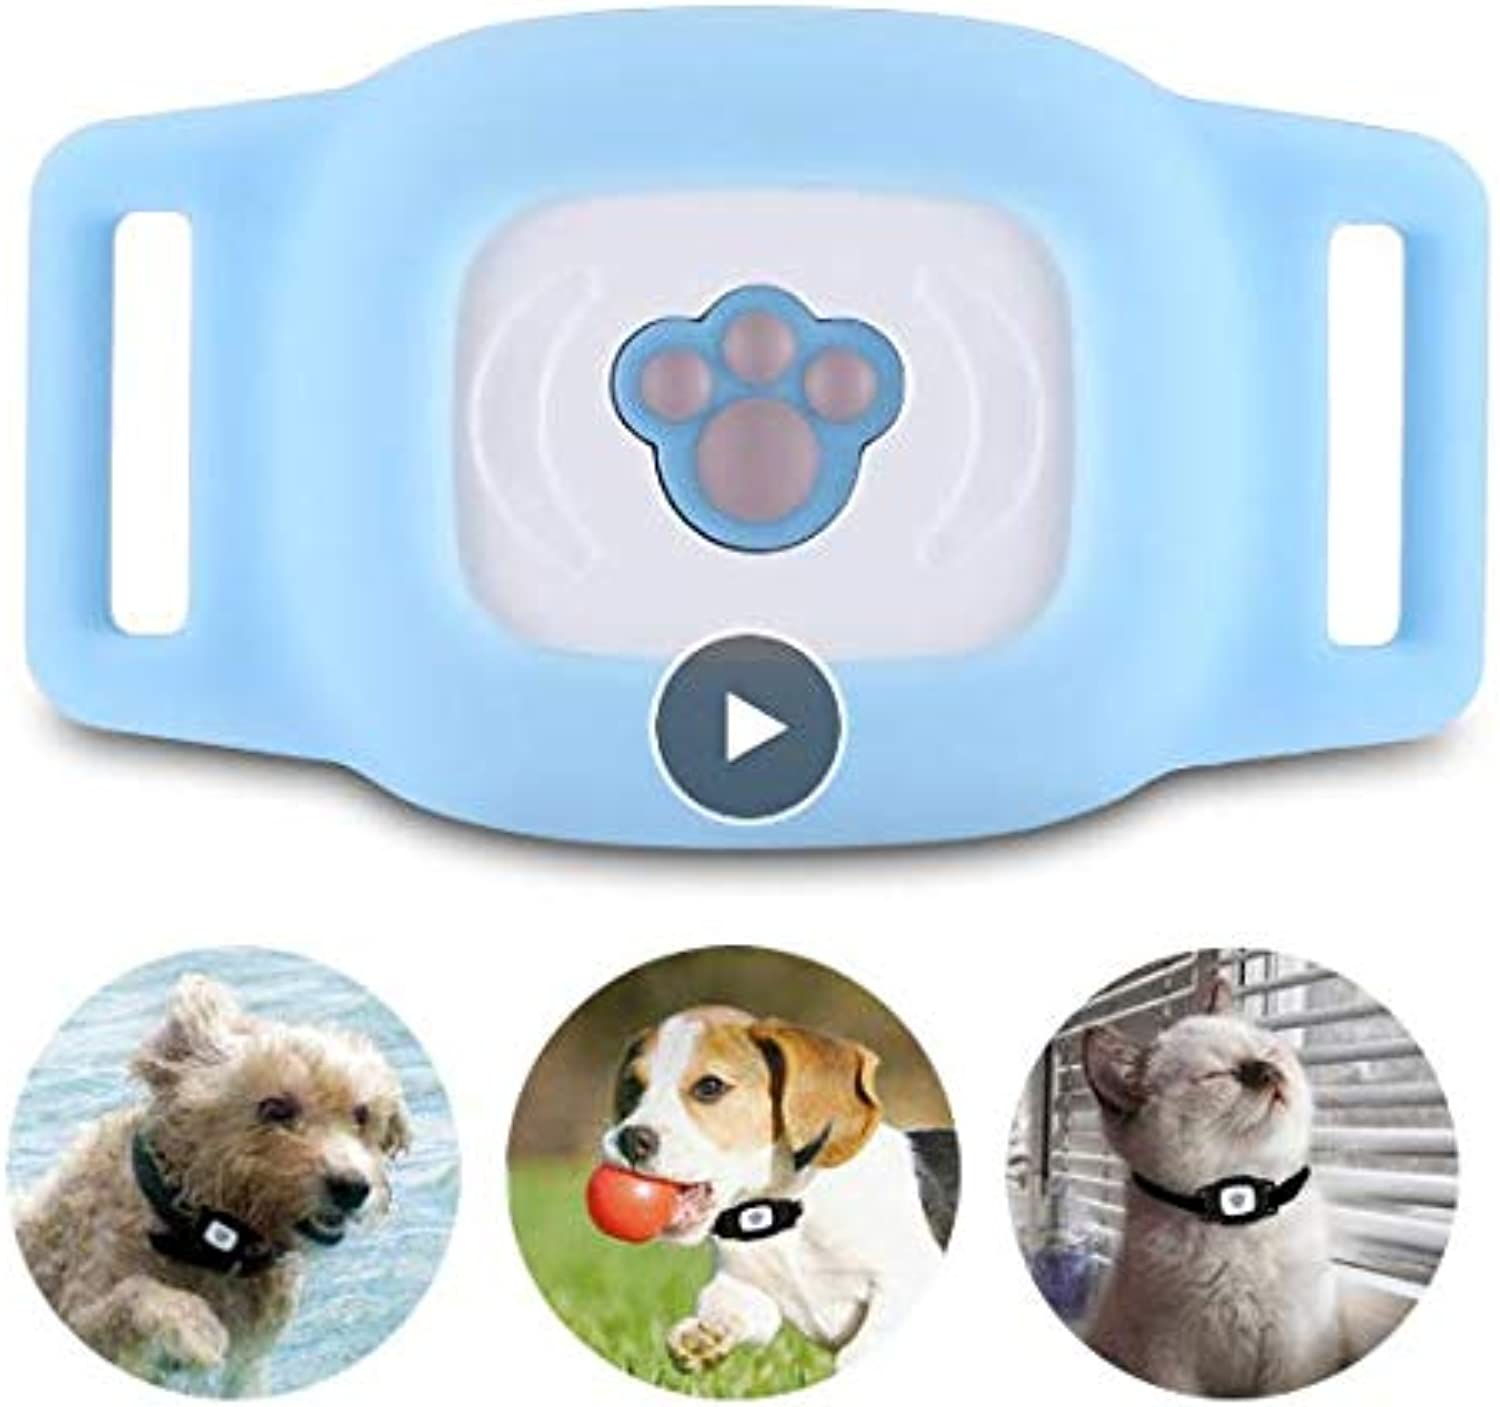 Lizhirui Smart Pet Dog Gps Tracker Finder Wireless blueetooth Gps Locator Waterproof Kid AntiLost Alarm Mini Lbs Tracking Track Collar